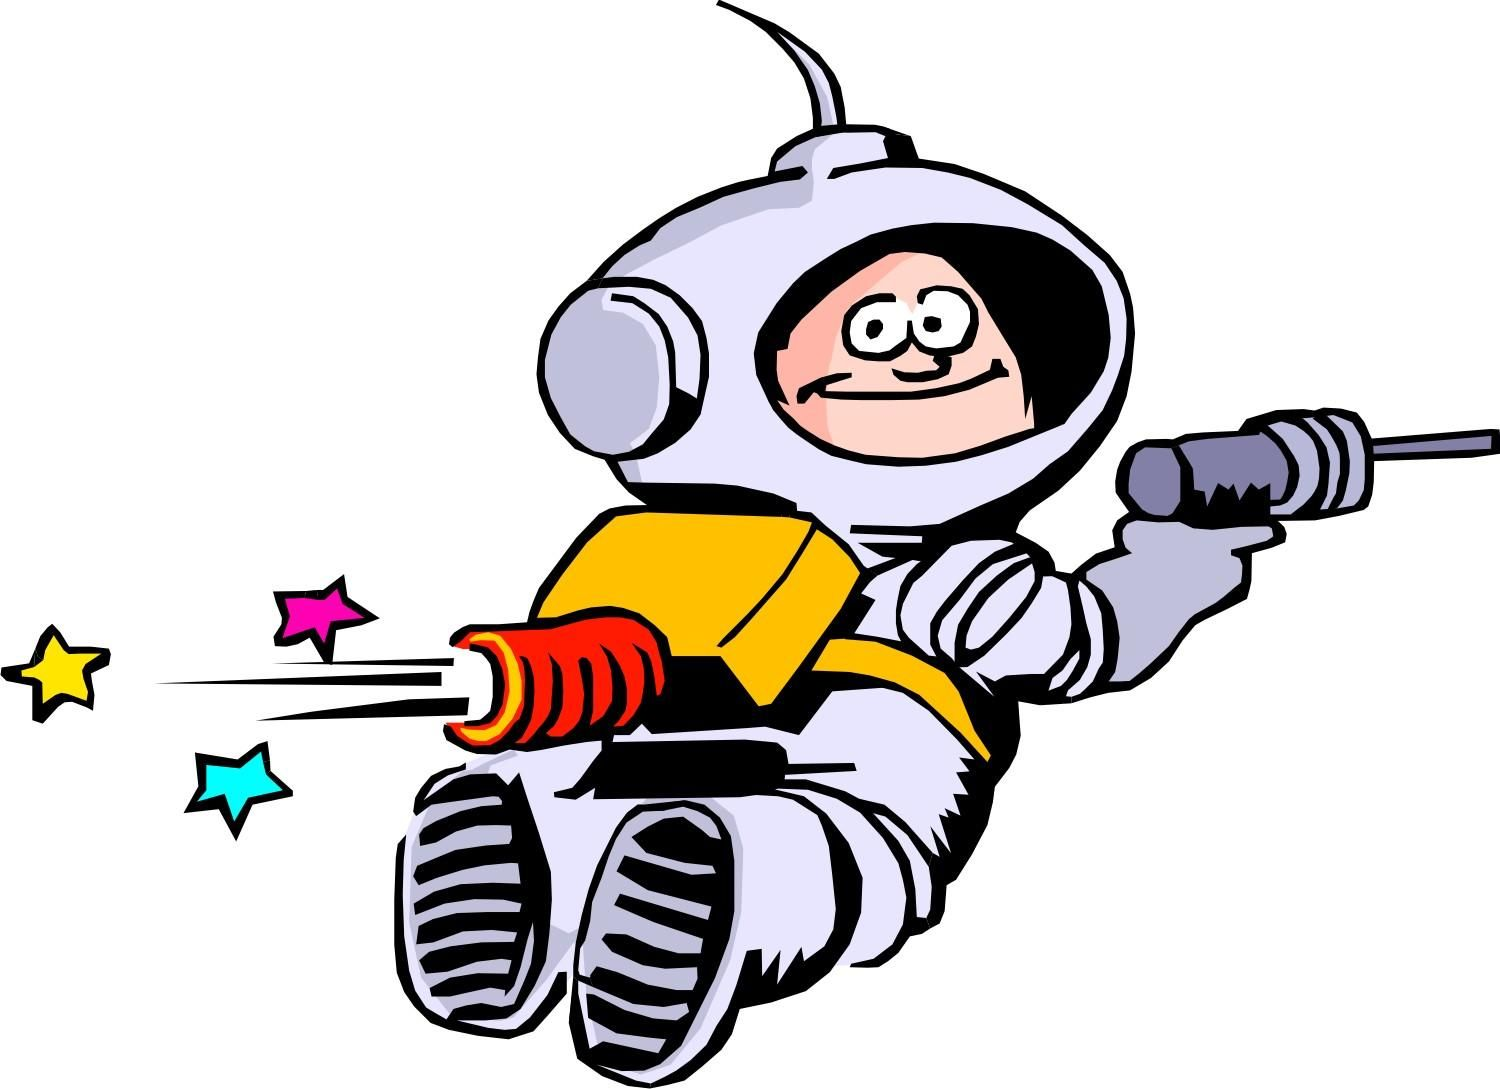 Clip art index of. Astronaut clipart body vector black and white